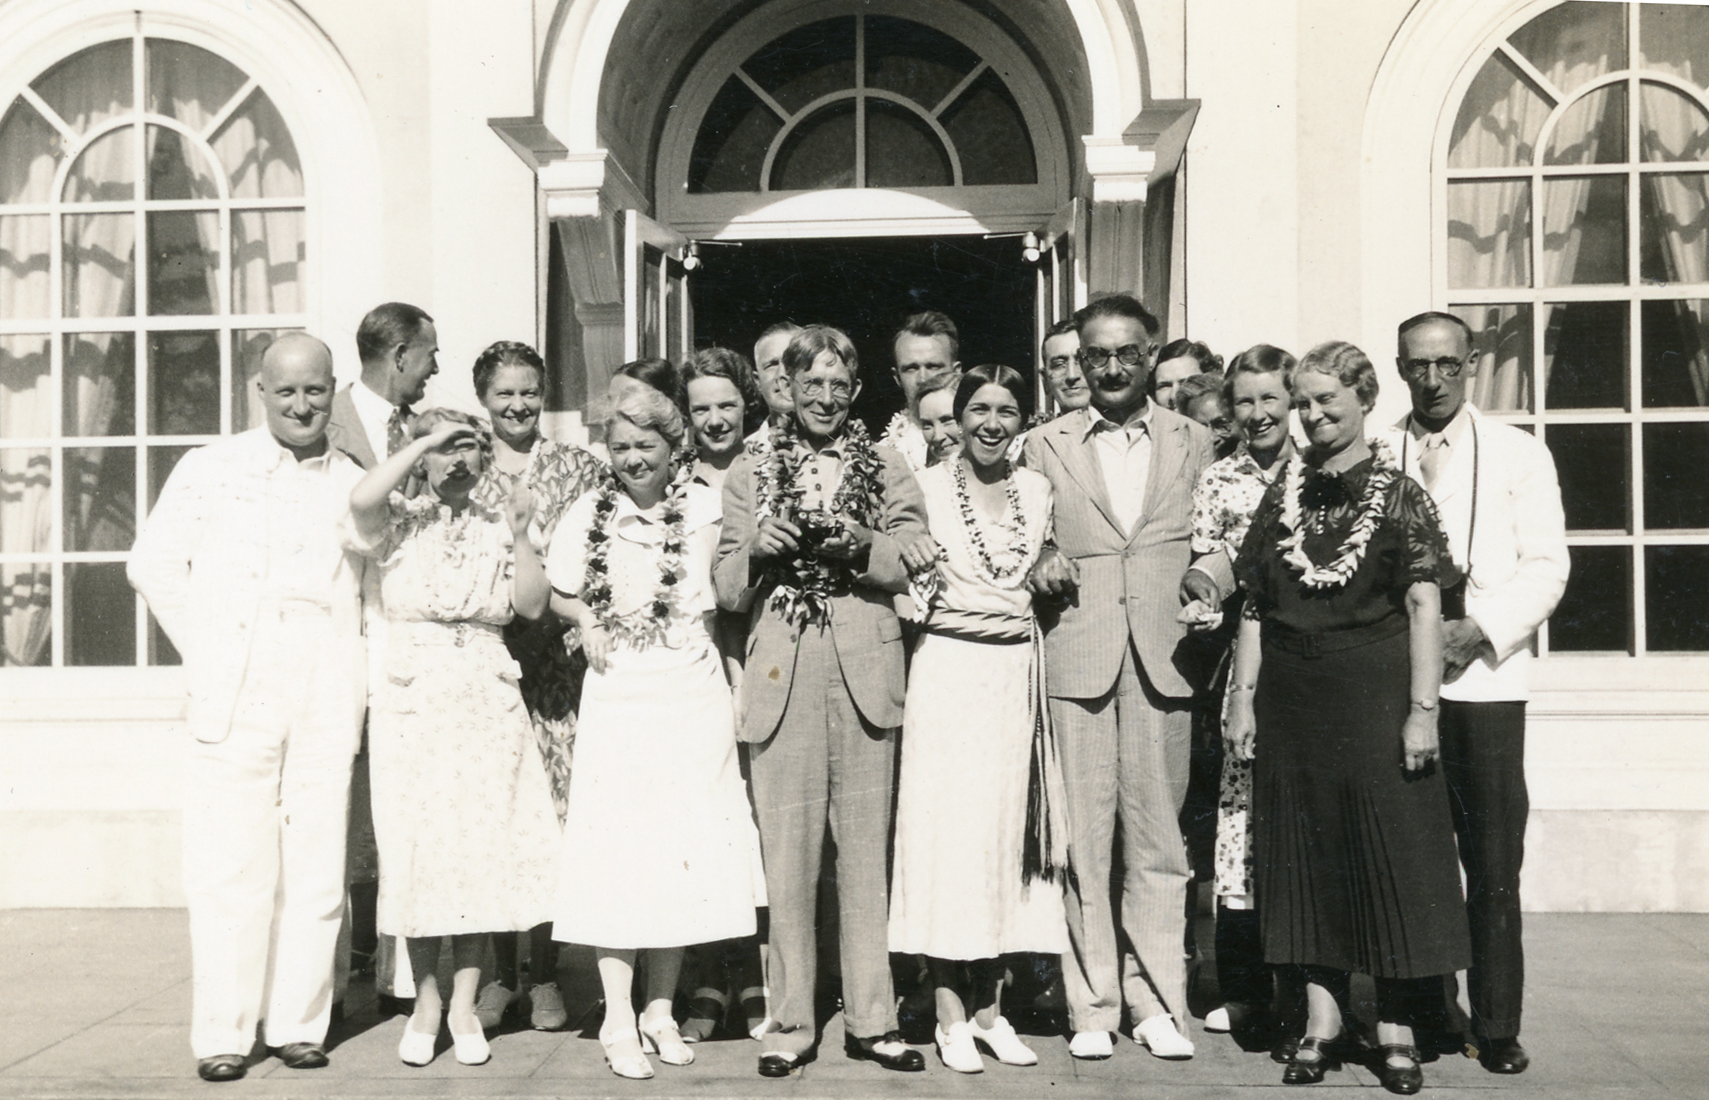 Delegates to the 1936 Hawai'i Seminar Conference on Native Education in Pacific Countries, <i>Journal of Anthropological Visit to United States and Europe, 1936/37</i>. Tindale Papers, South Australian Museum Archives, AA 338/5/26/12/1